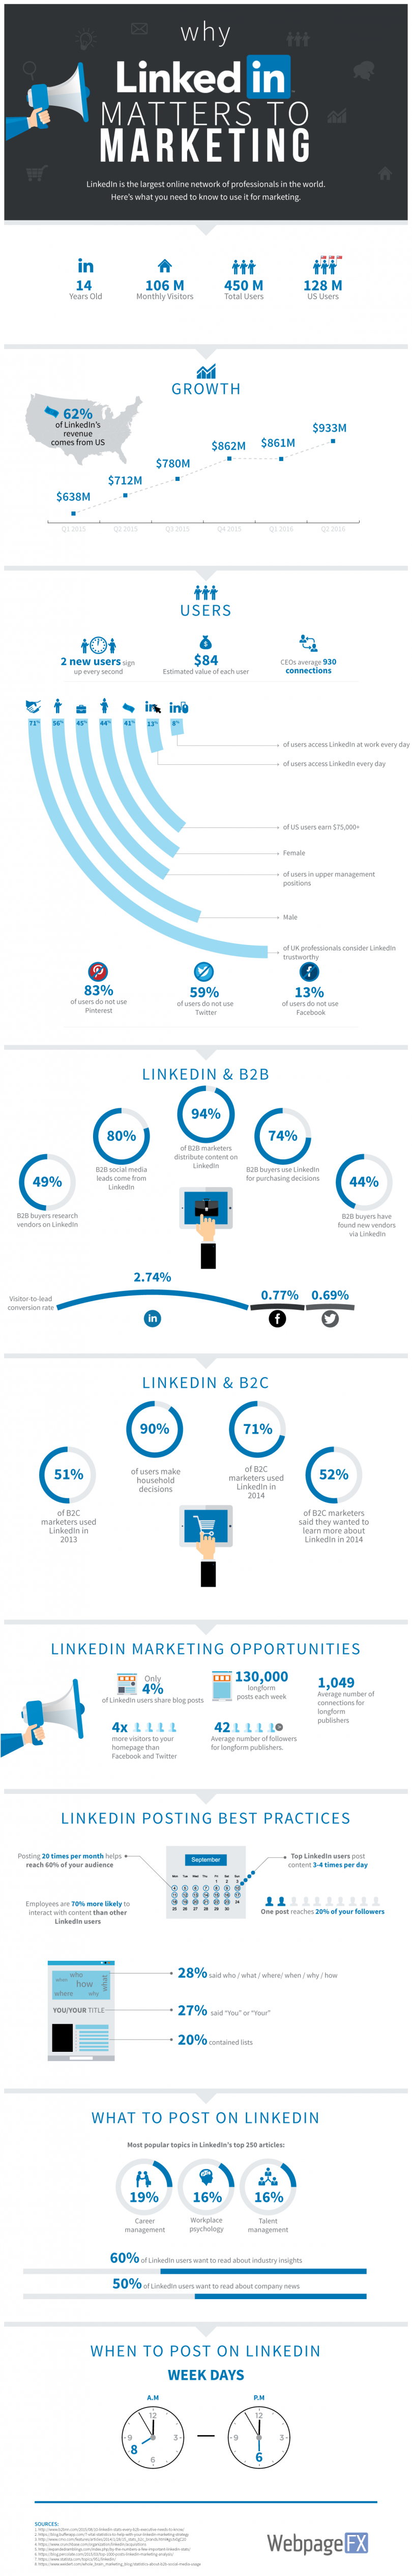 infographie-311-why-linkedin-matters-to-marketing